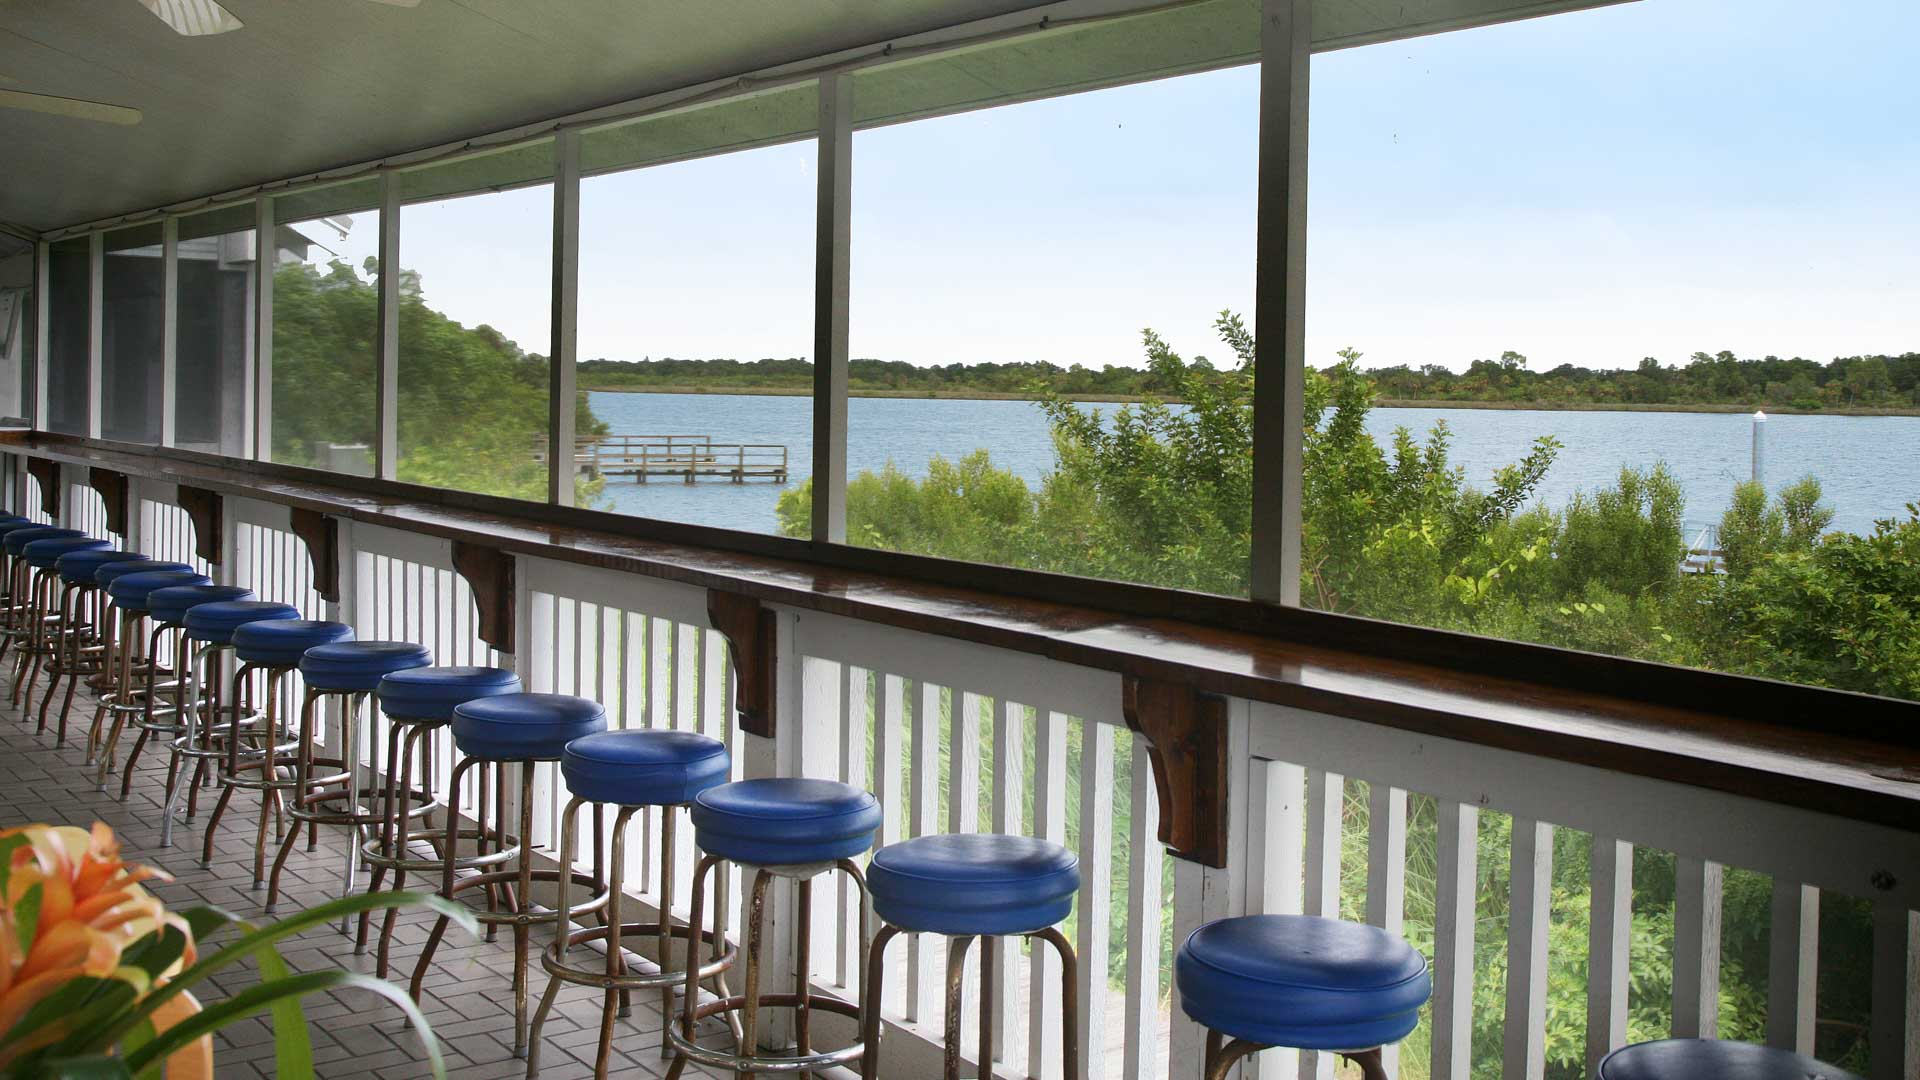 Riverside Club 55+ Golf, Marina and Manufactured Homes Community Bar Stools Looking out to Hayes Bayou in Ruskin, FL